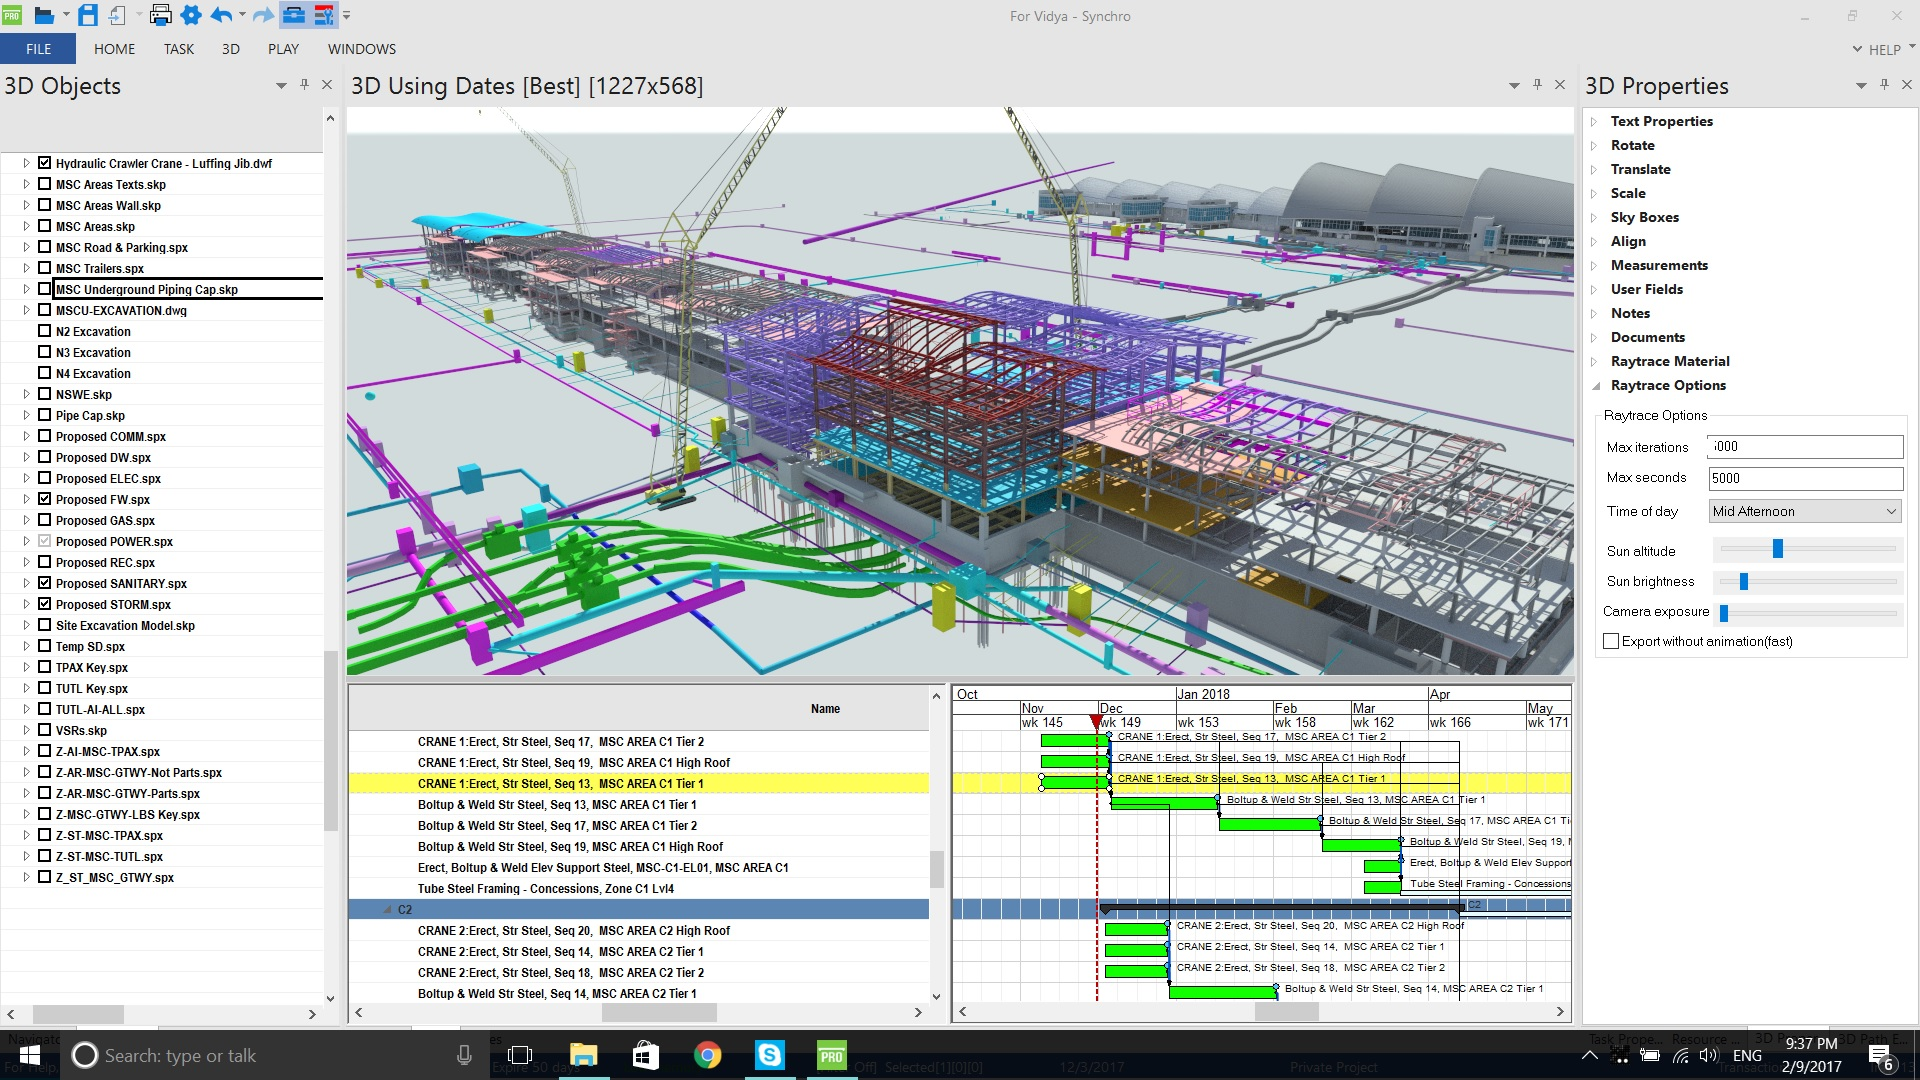 Bentley Systems Acquires Synchro Software To Extend